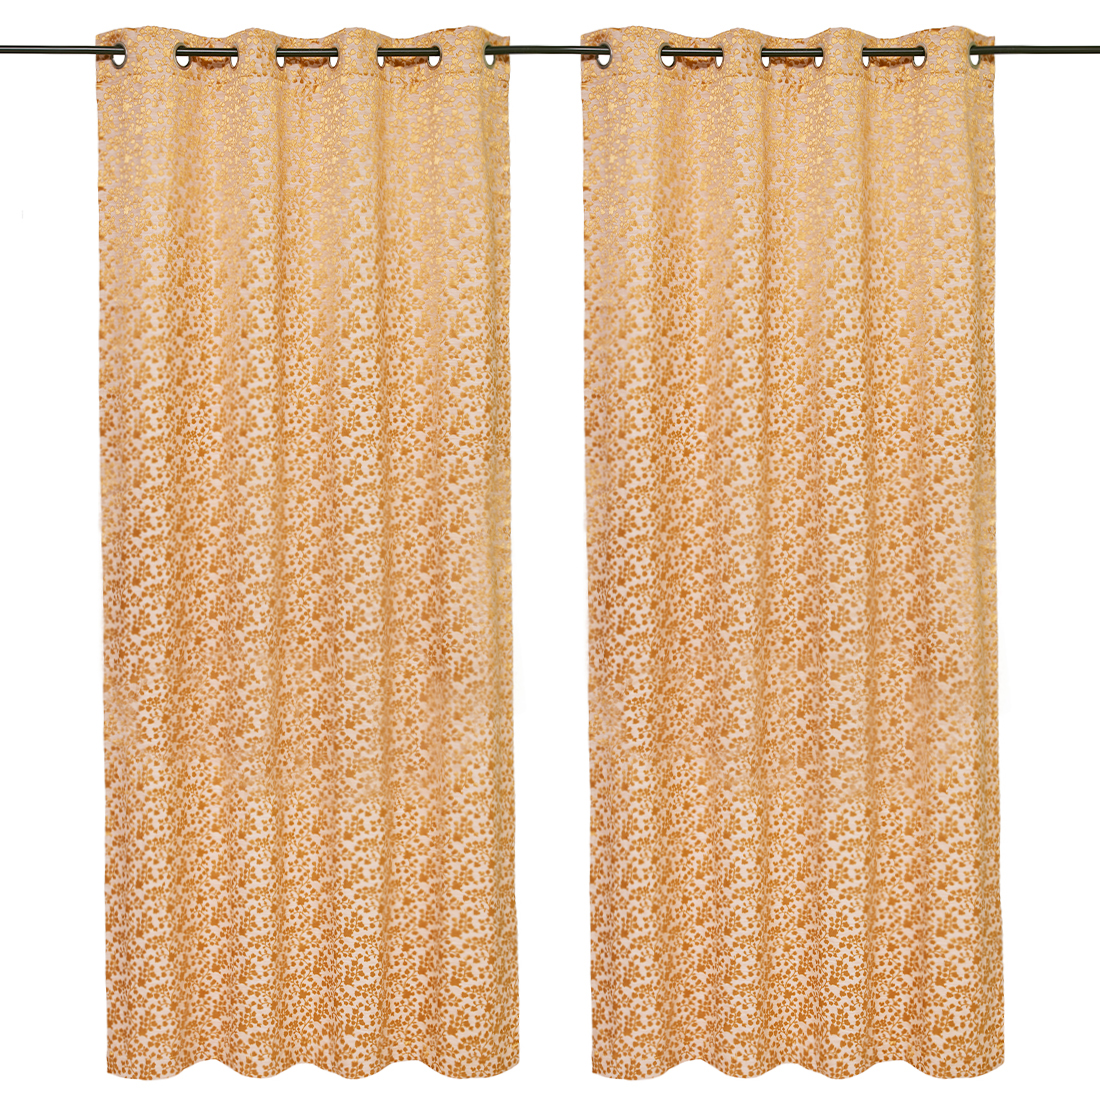 Amour Jacquard set of 2 Polyester Door Curtains in Mustard Colour by Living Essence